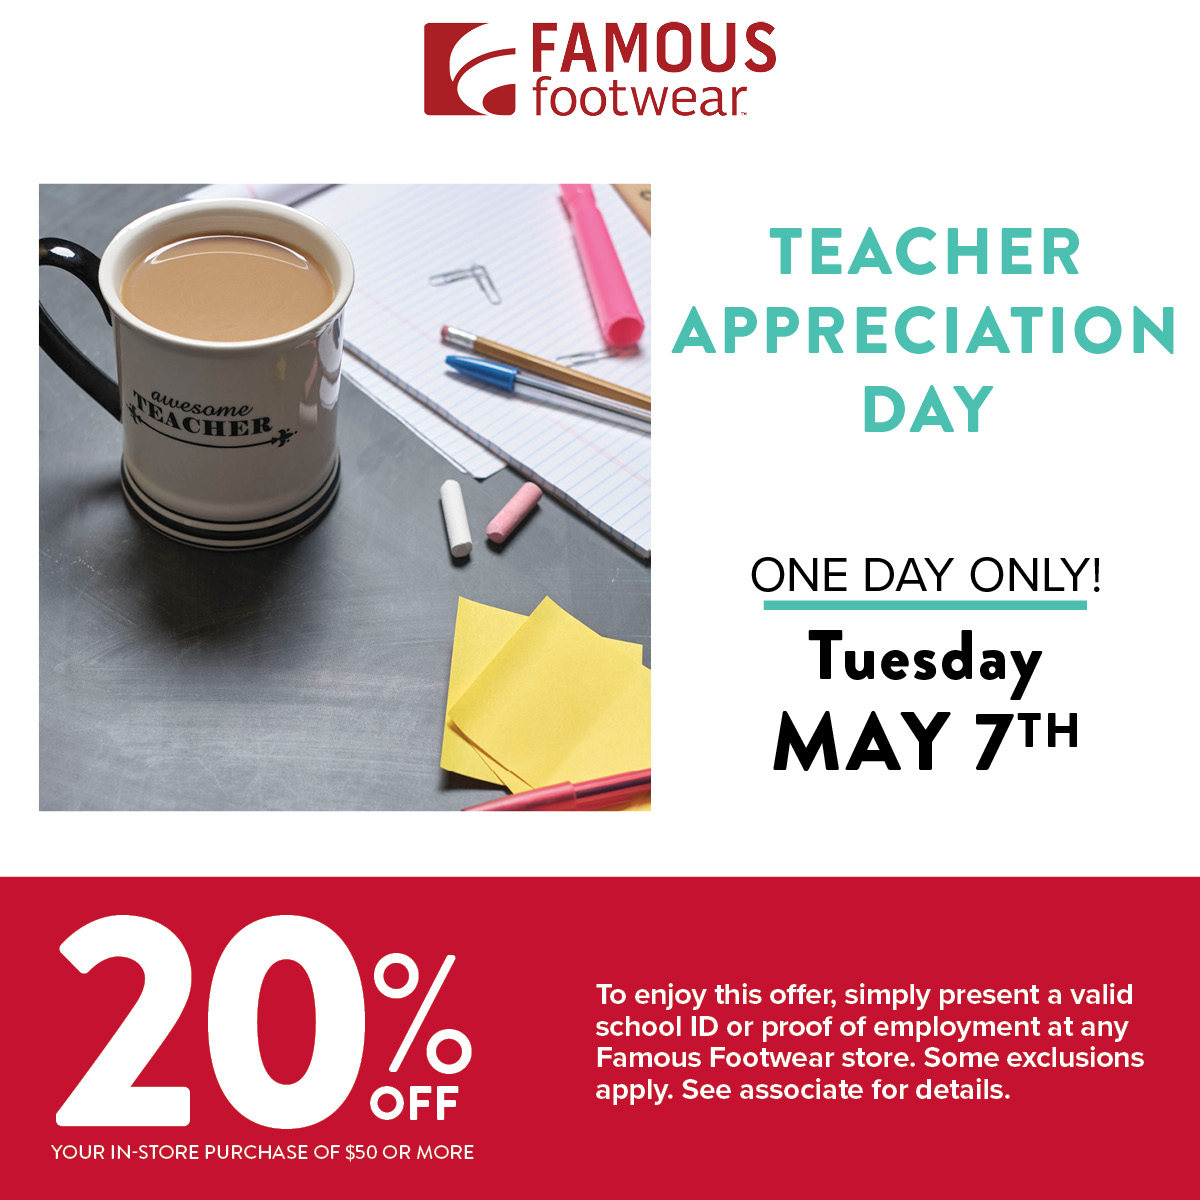 Famous Footwear Teacher Appreciation Day.jpg